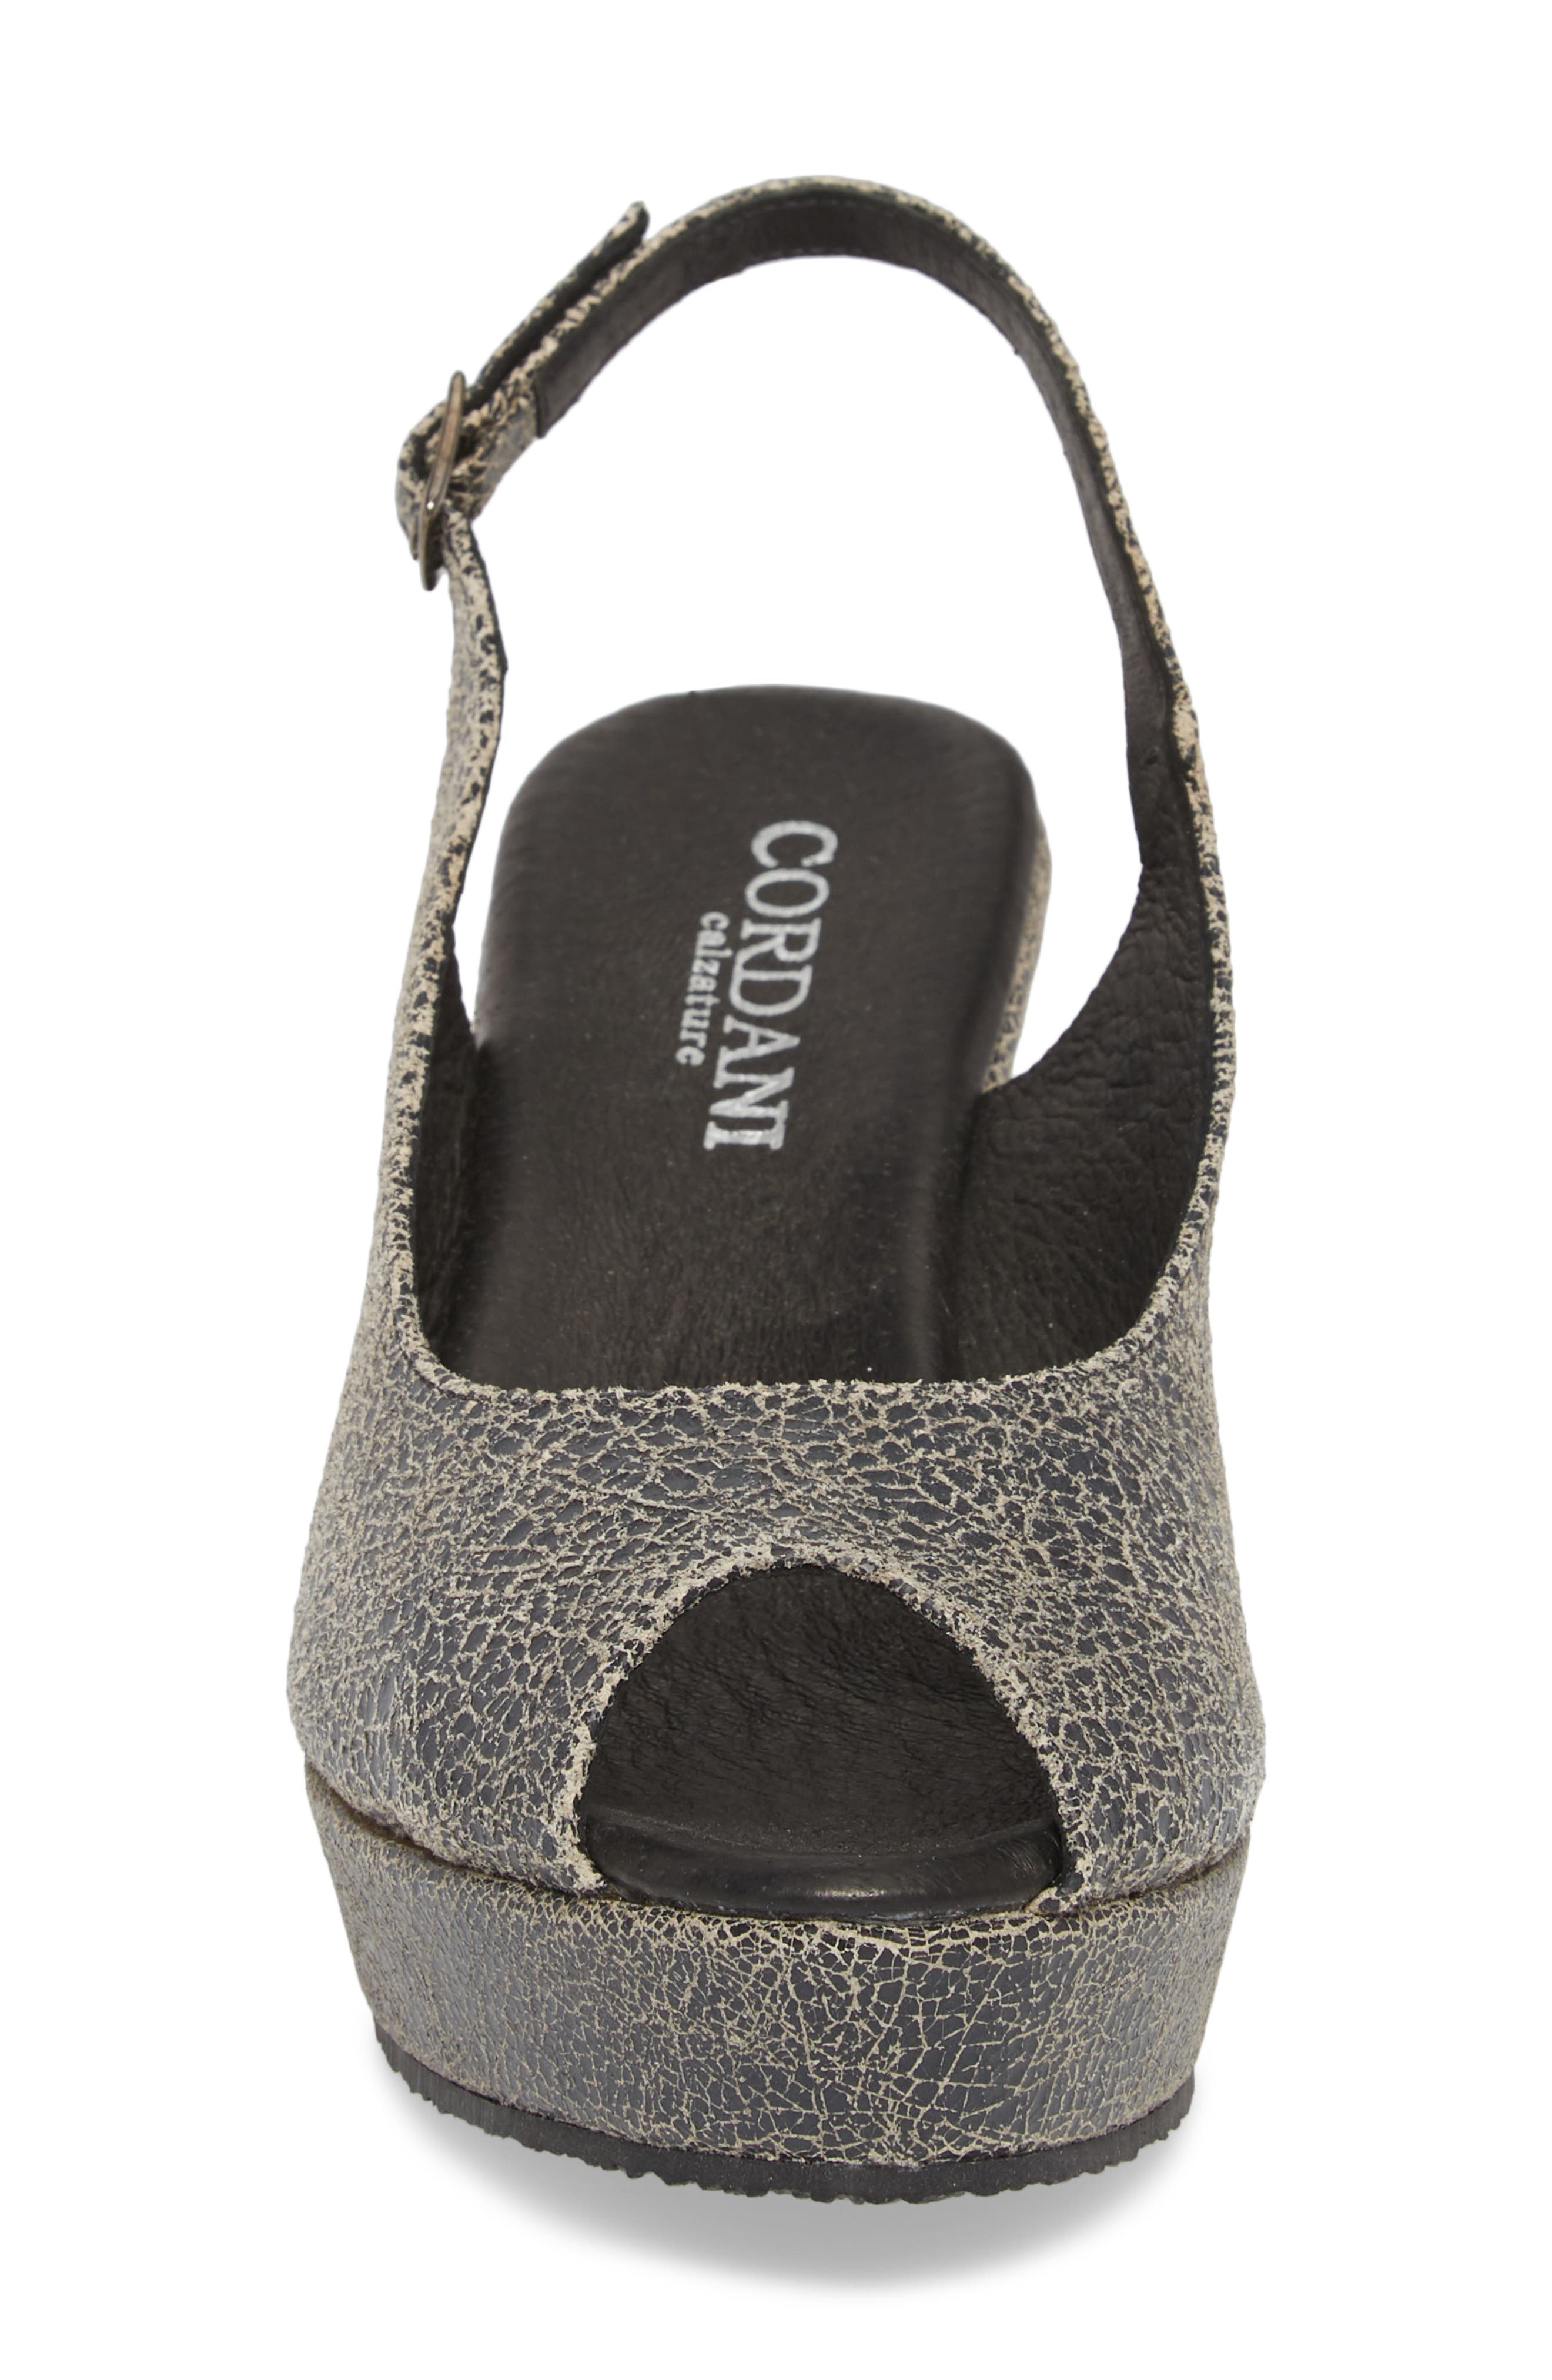 Fabrice Slingback Platform Sandal,                             Alternate thumbnail 4, color,                             GREY CRACKLE LEATHER